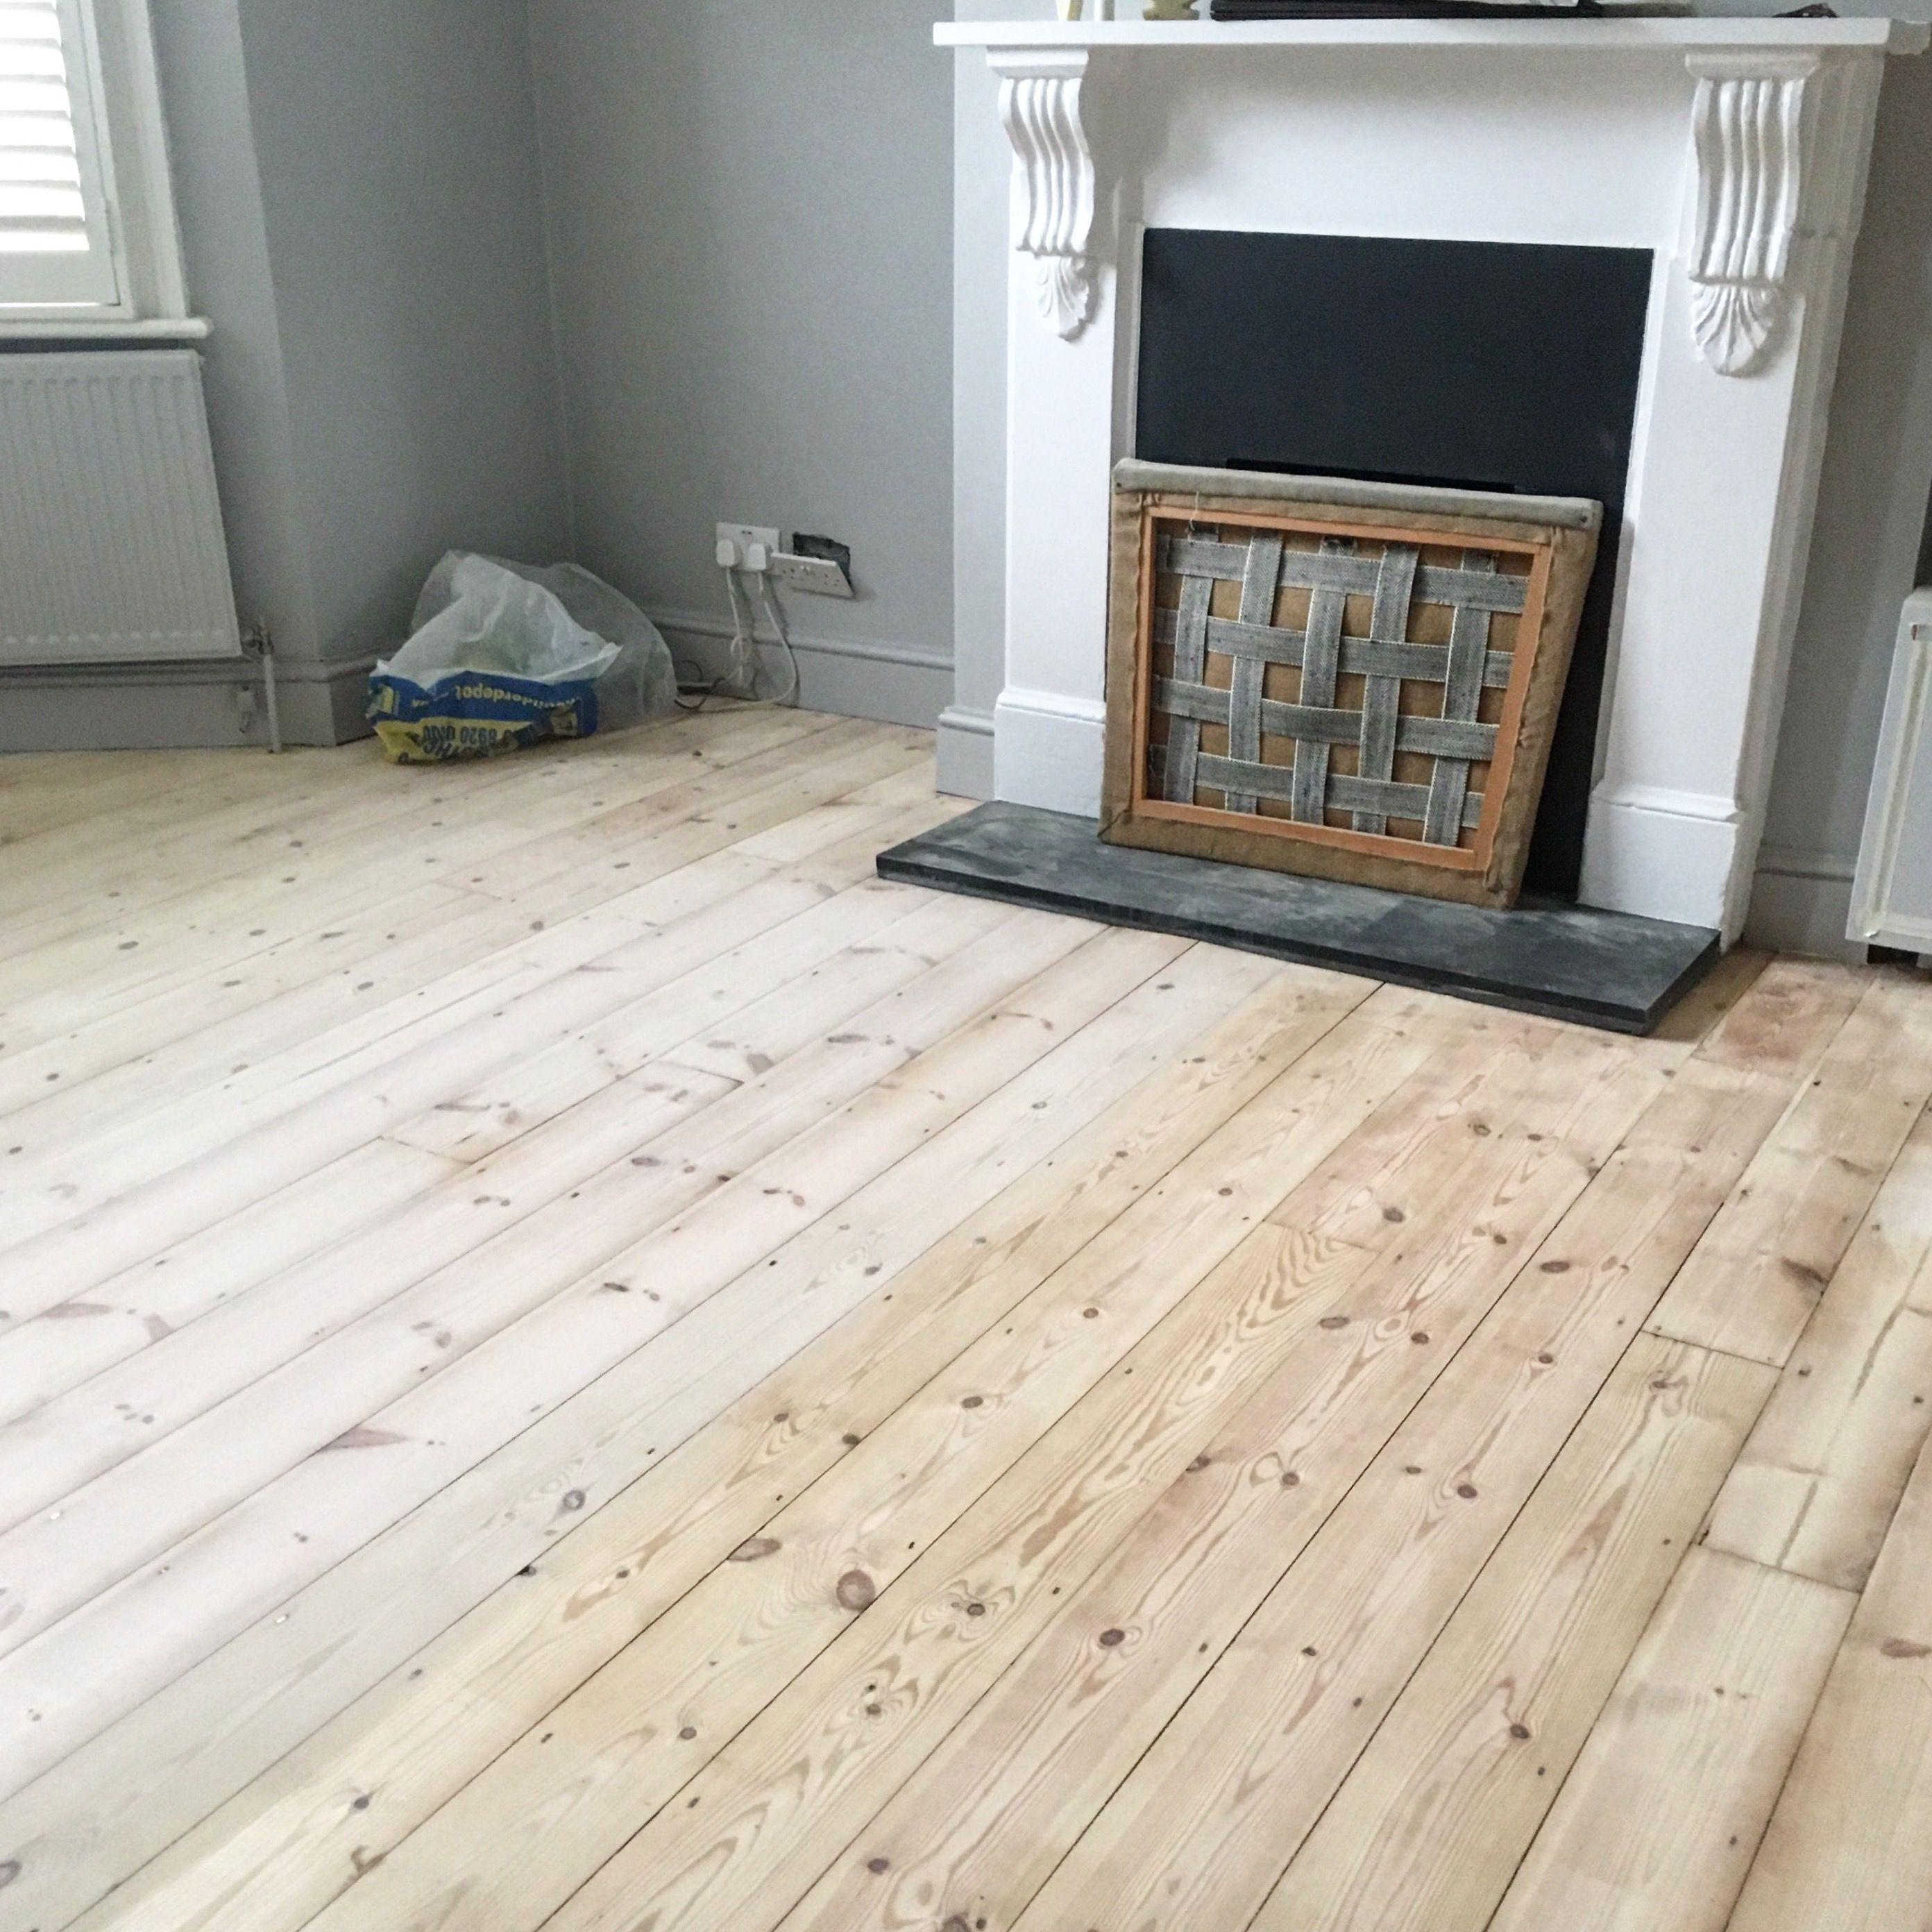 Pine Wooden Floorboards Half Treated With Finney S White Wood Dye Diluted On A 1 2 Ratio In A London Wooden Floorboards Pine Wood Flooring White Wooden Floor